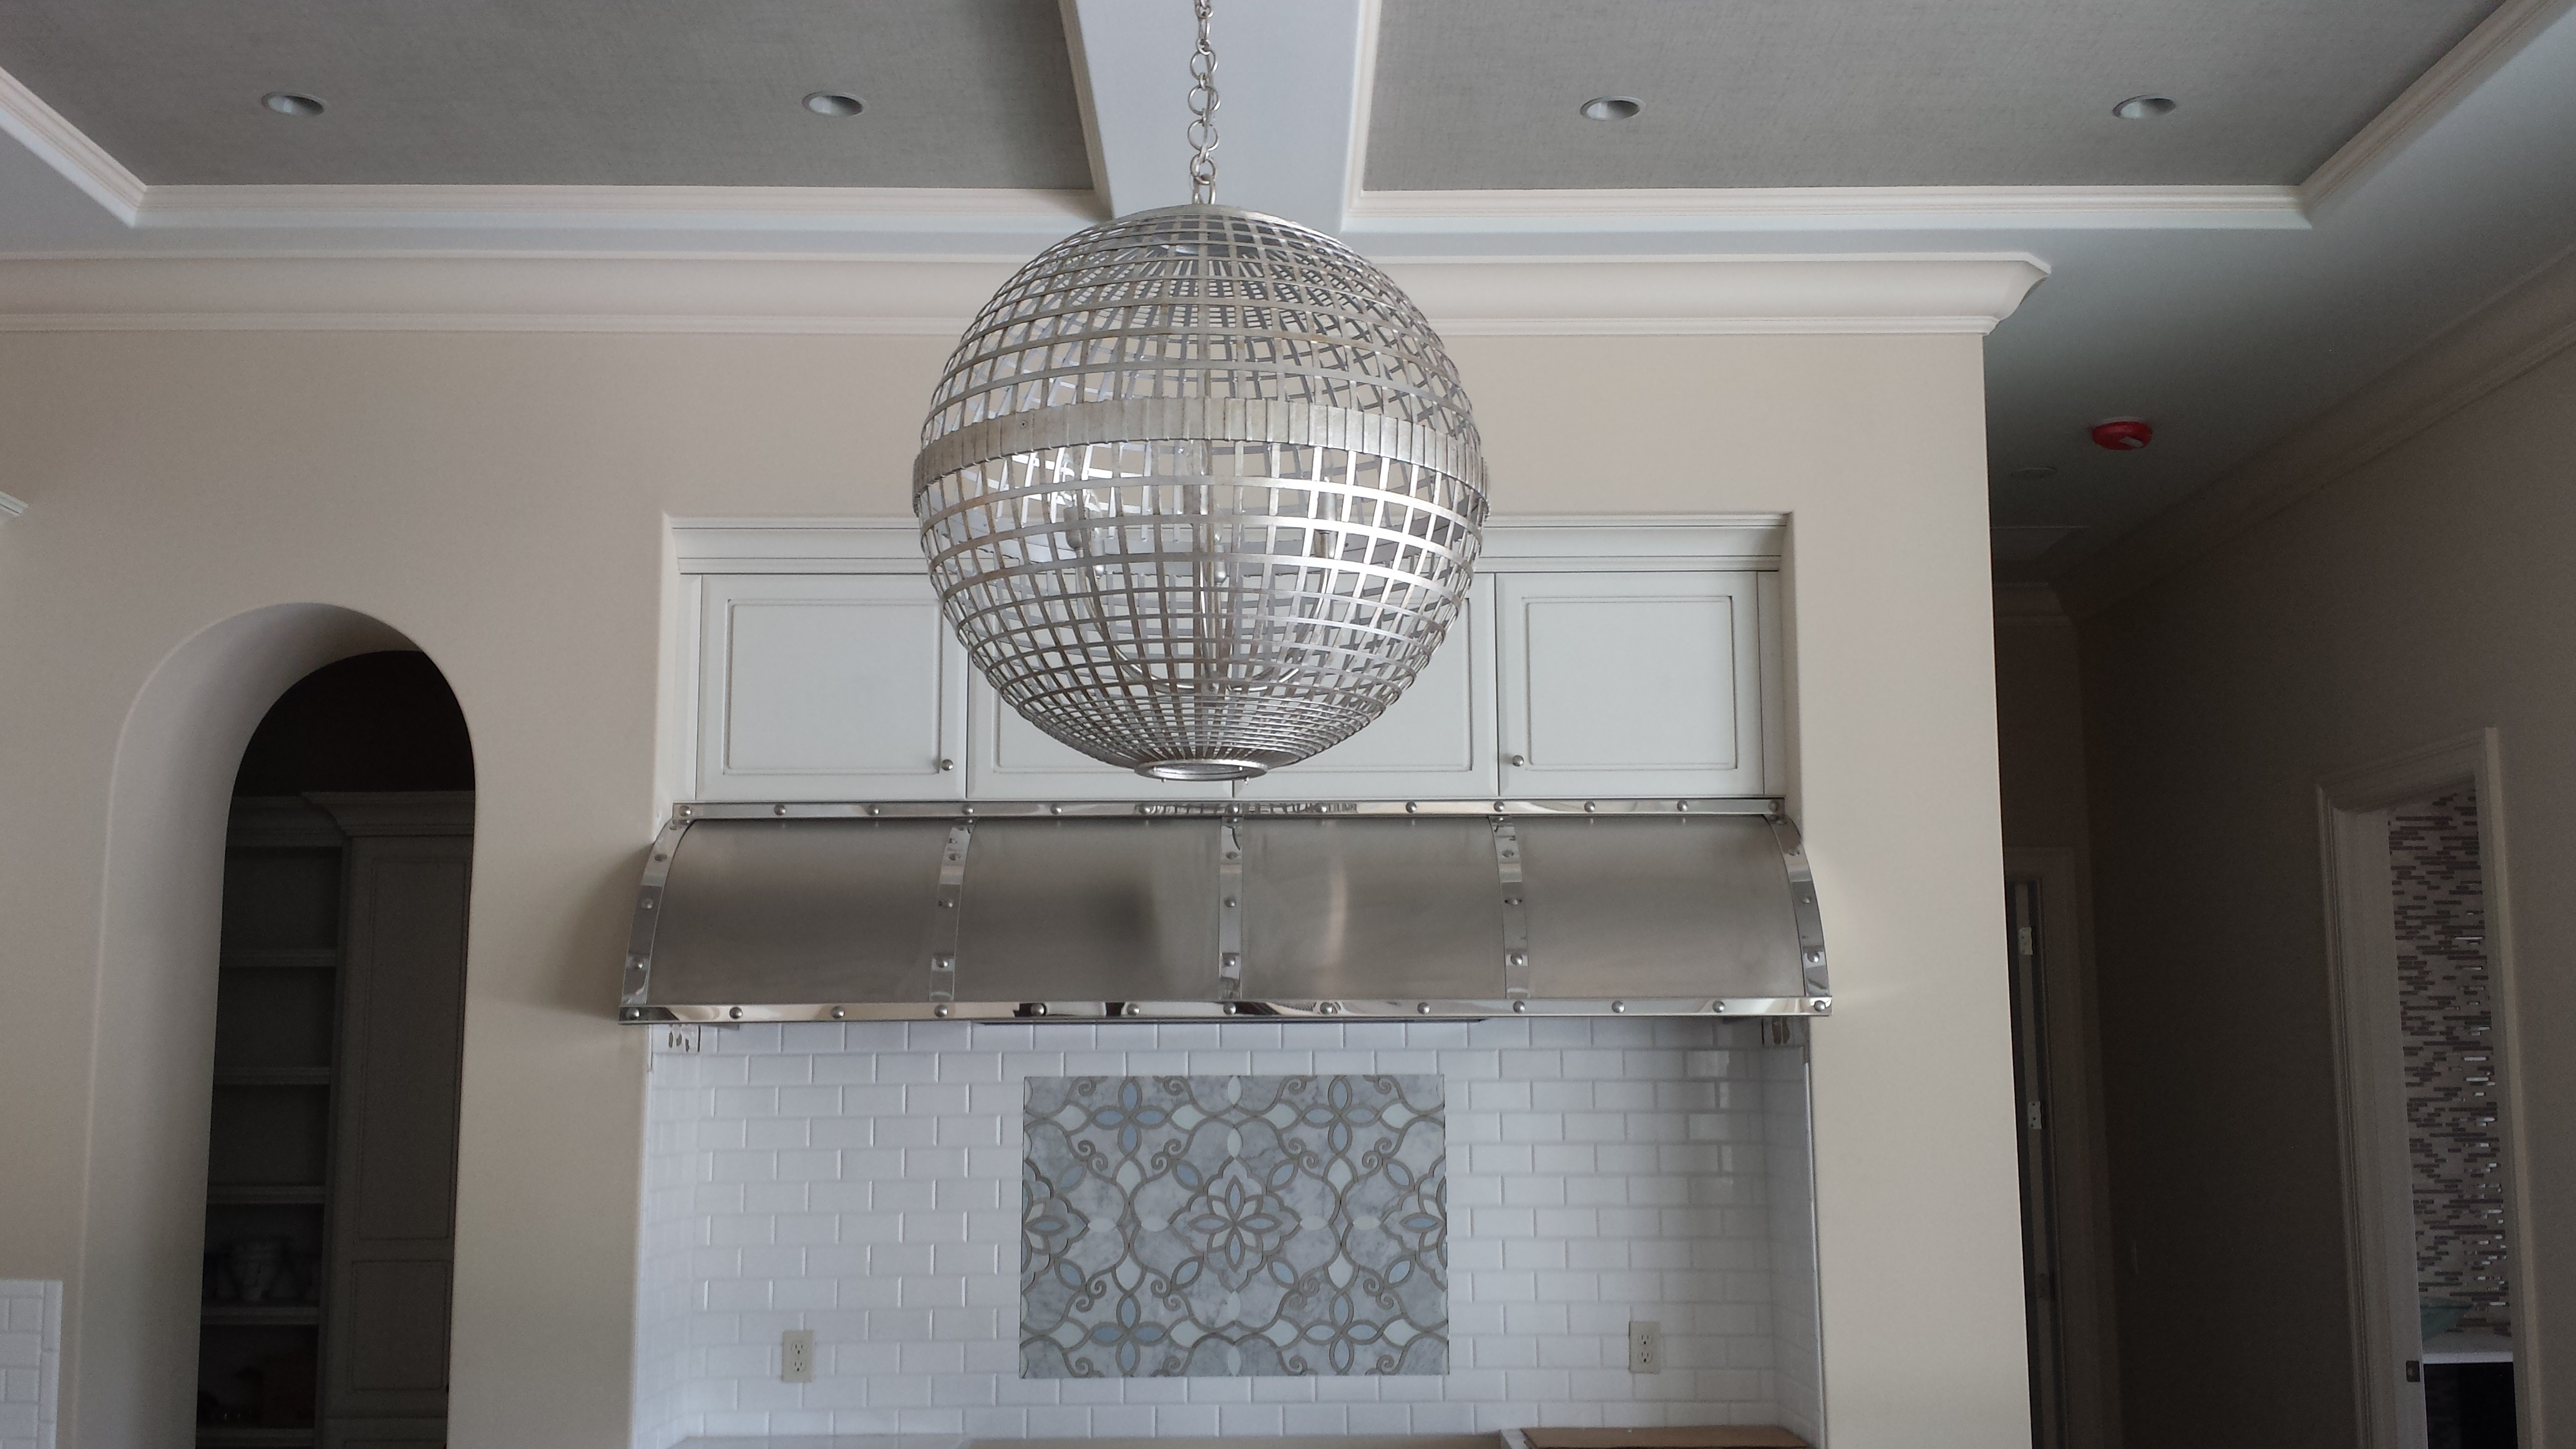 zephyr kitchen hood island ejmcopper kitchen hoods are custom built around our customers needs in regards to the size shape and space of environment which they ejmcoppercom custom copper kitchen hoods zephyr hood ejmcopper